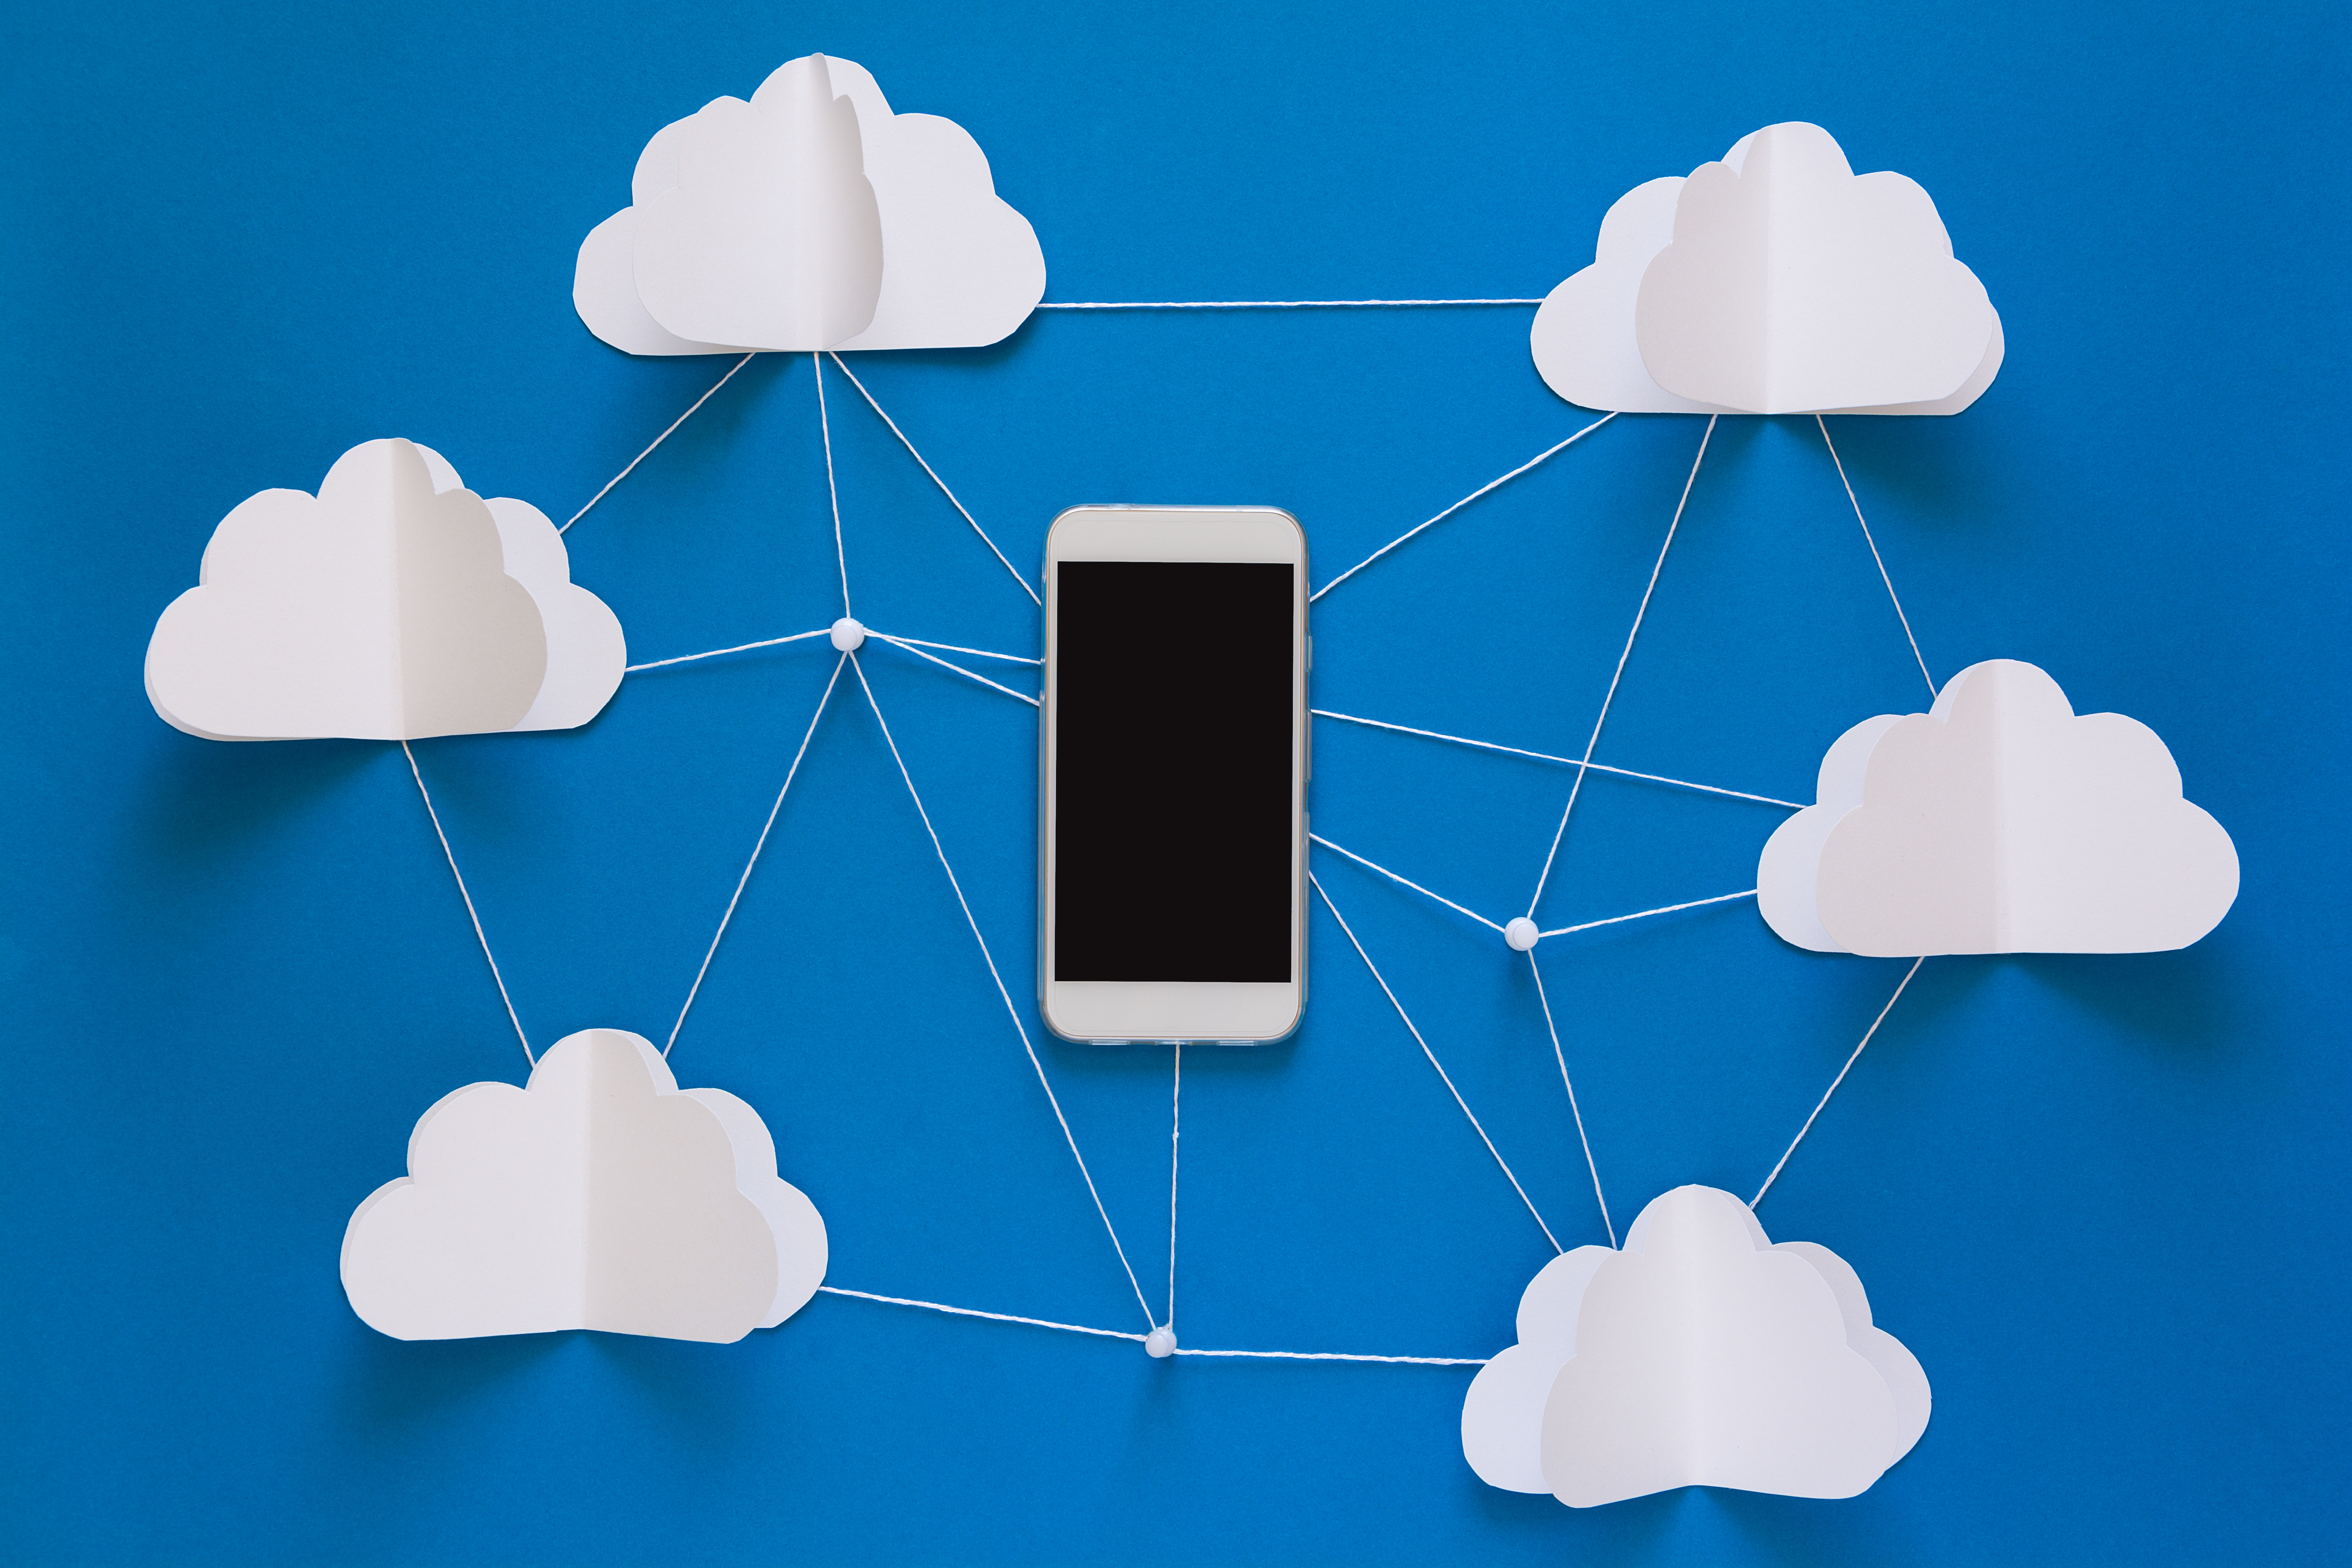 network-connection-and-cloud-storage-technology-co-G9WC47J